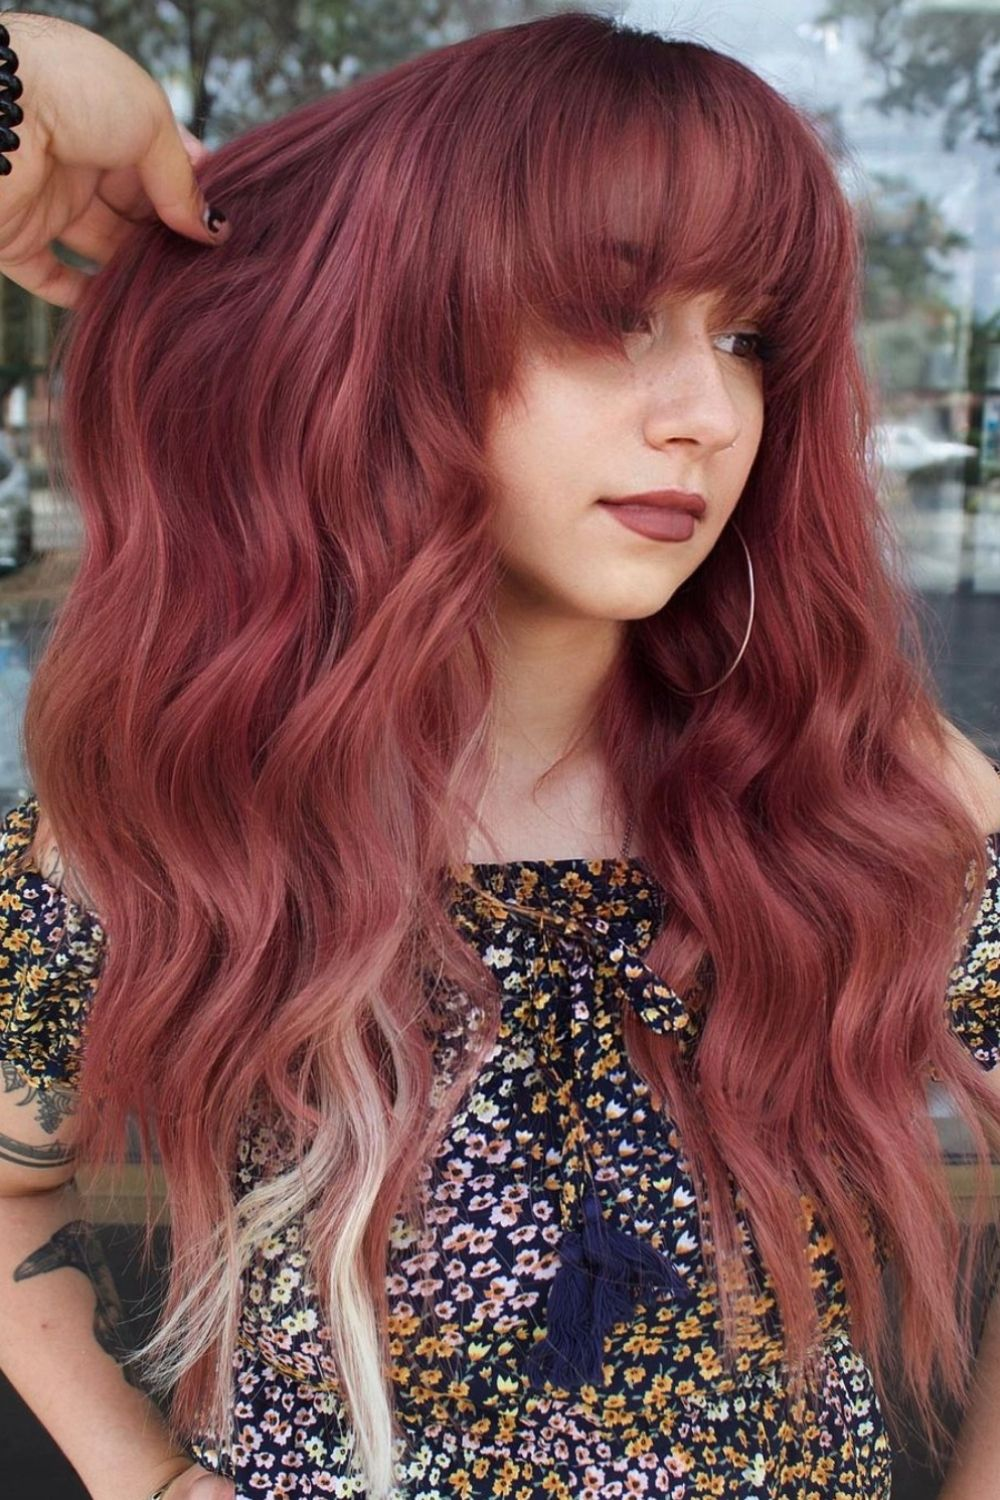 27 Best Fall hair color 2021 trends ideas you'll not miss !